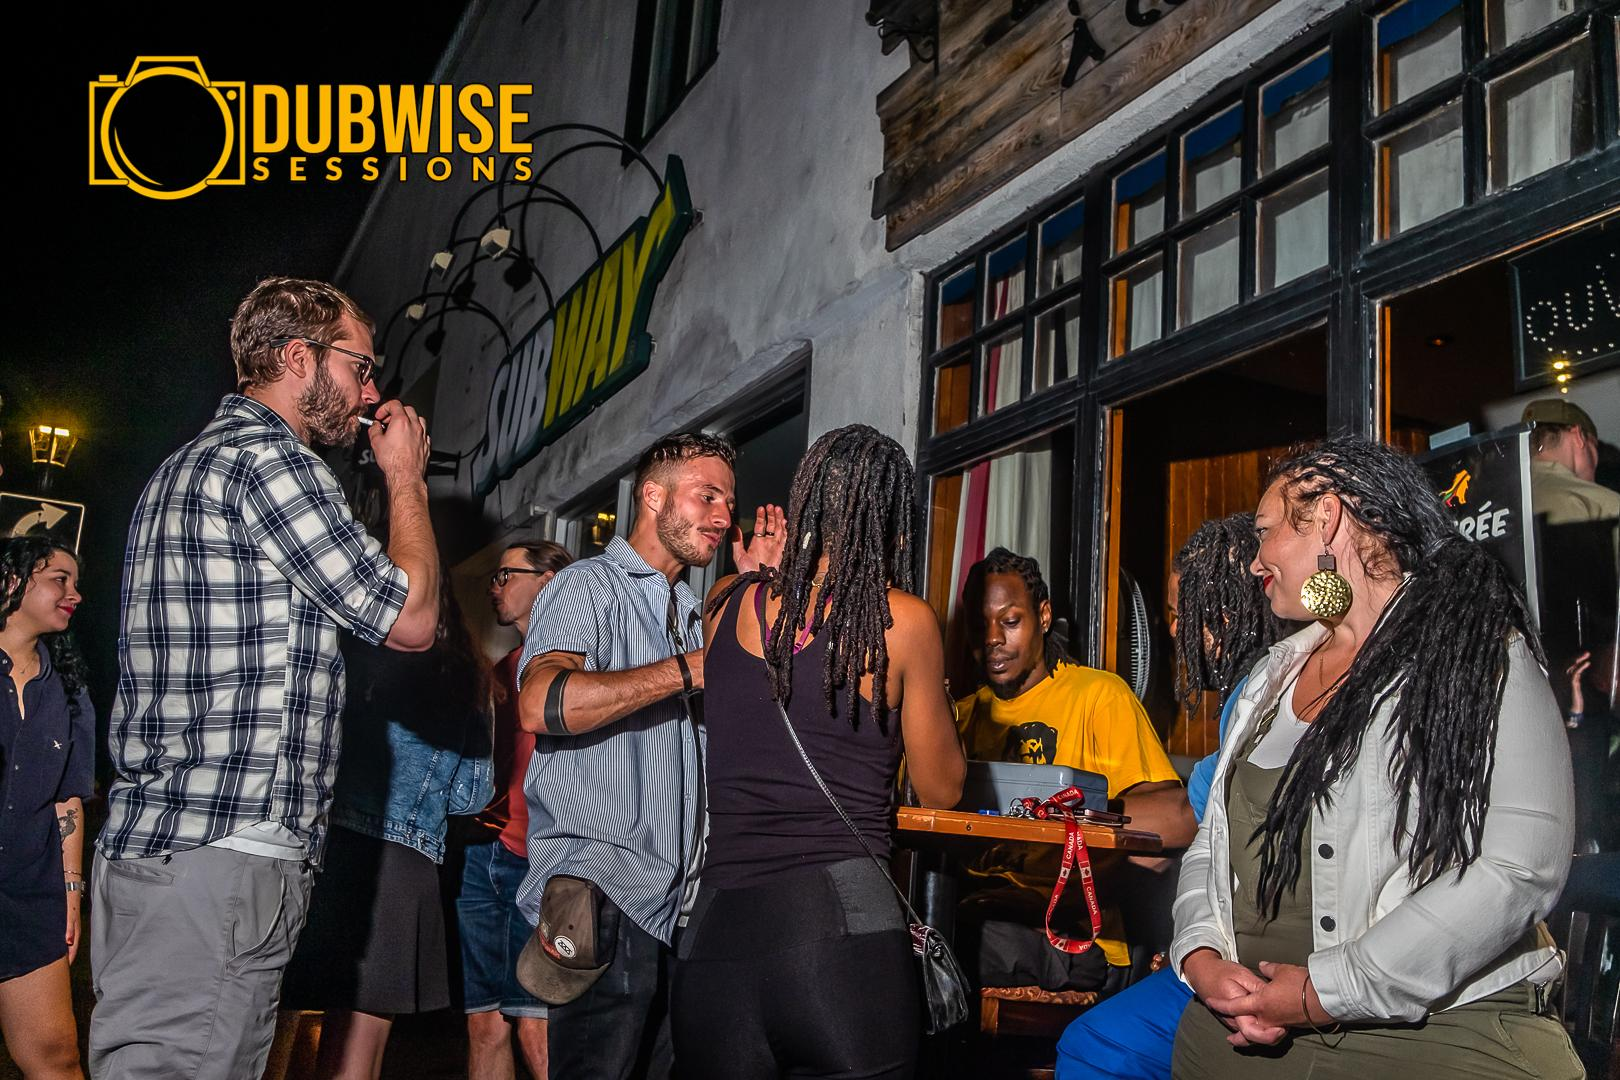 Soirée Reggae Night DUBWISE SESSIONS